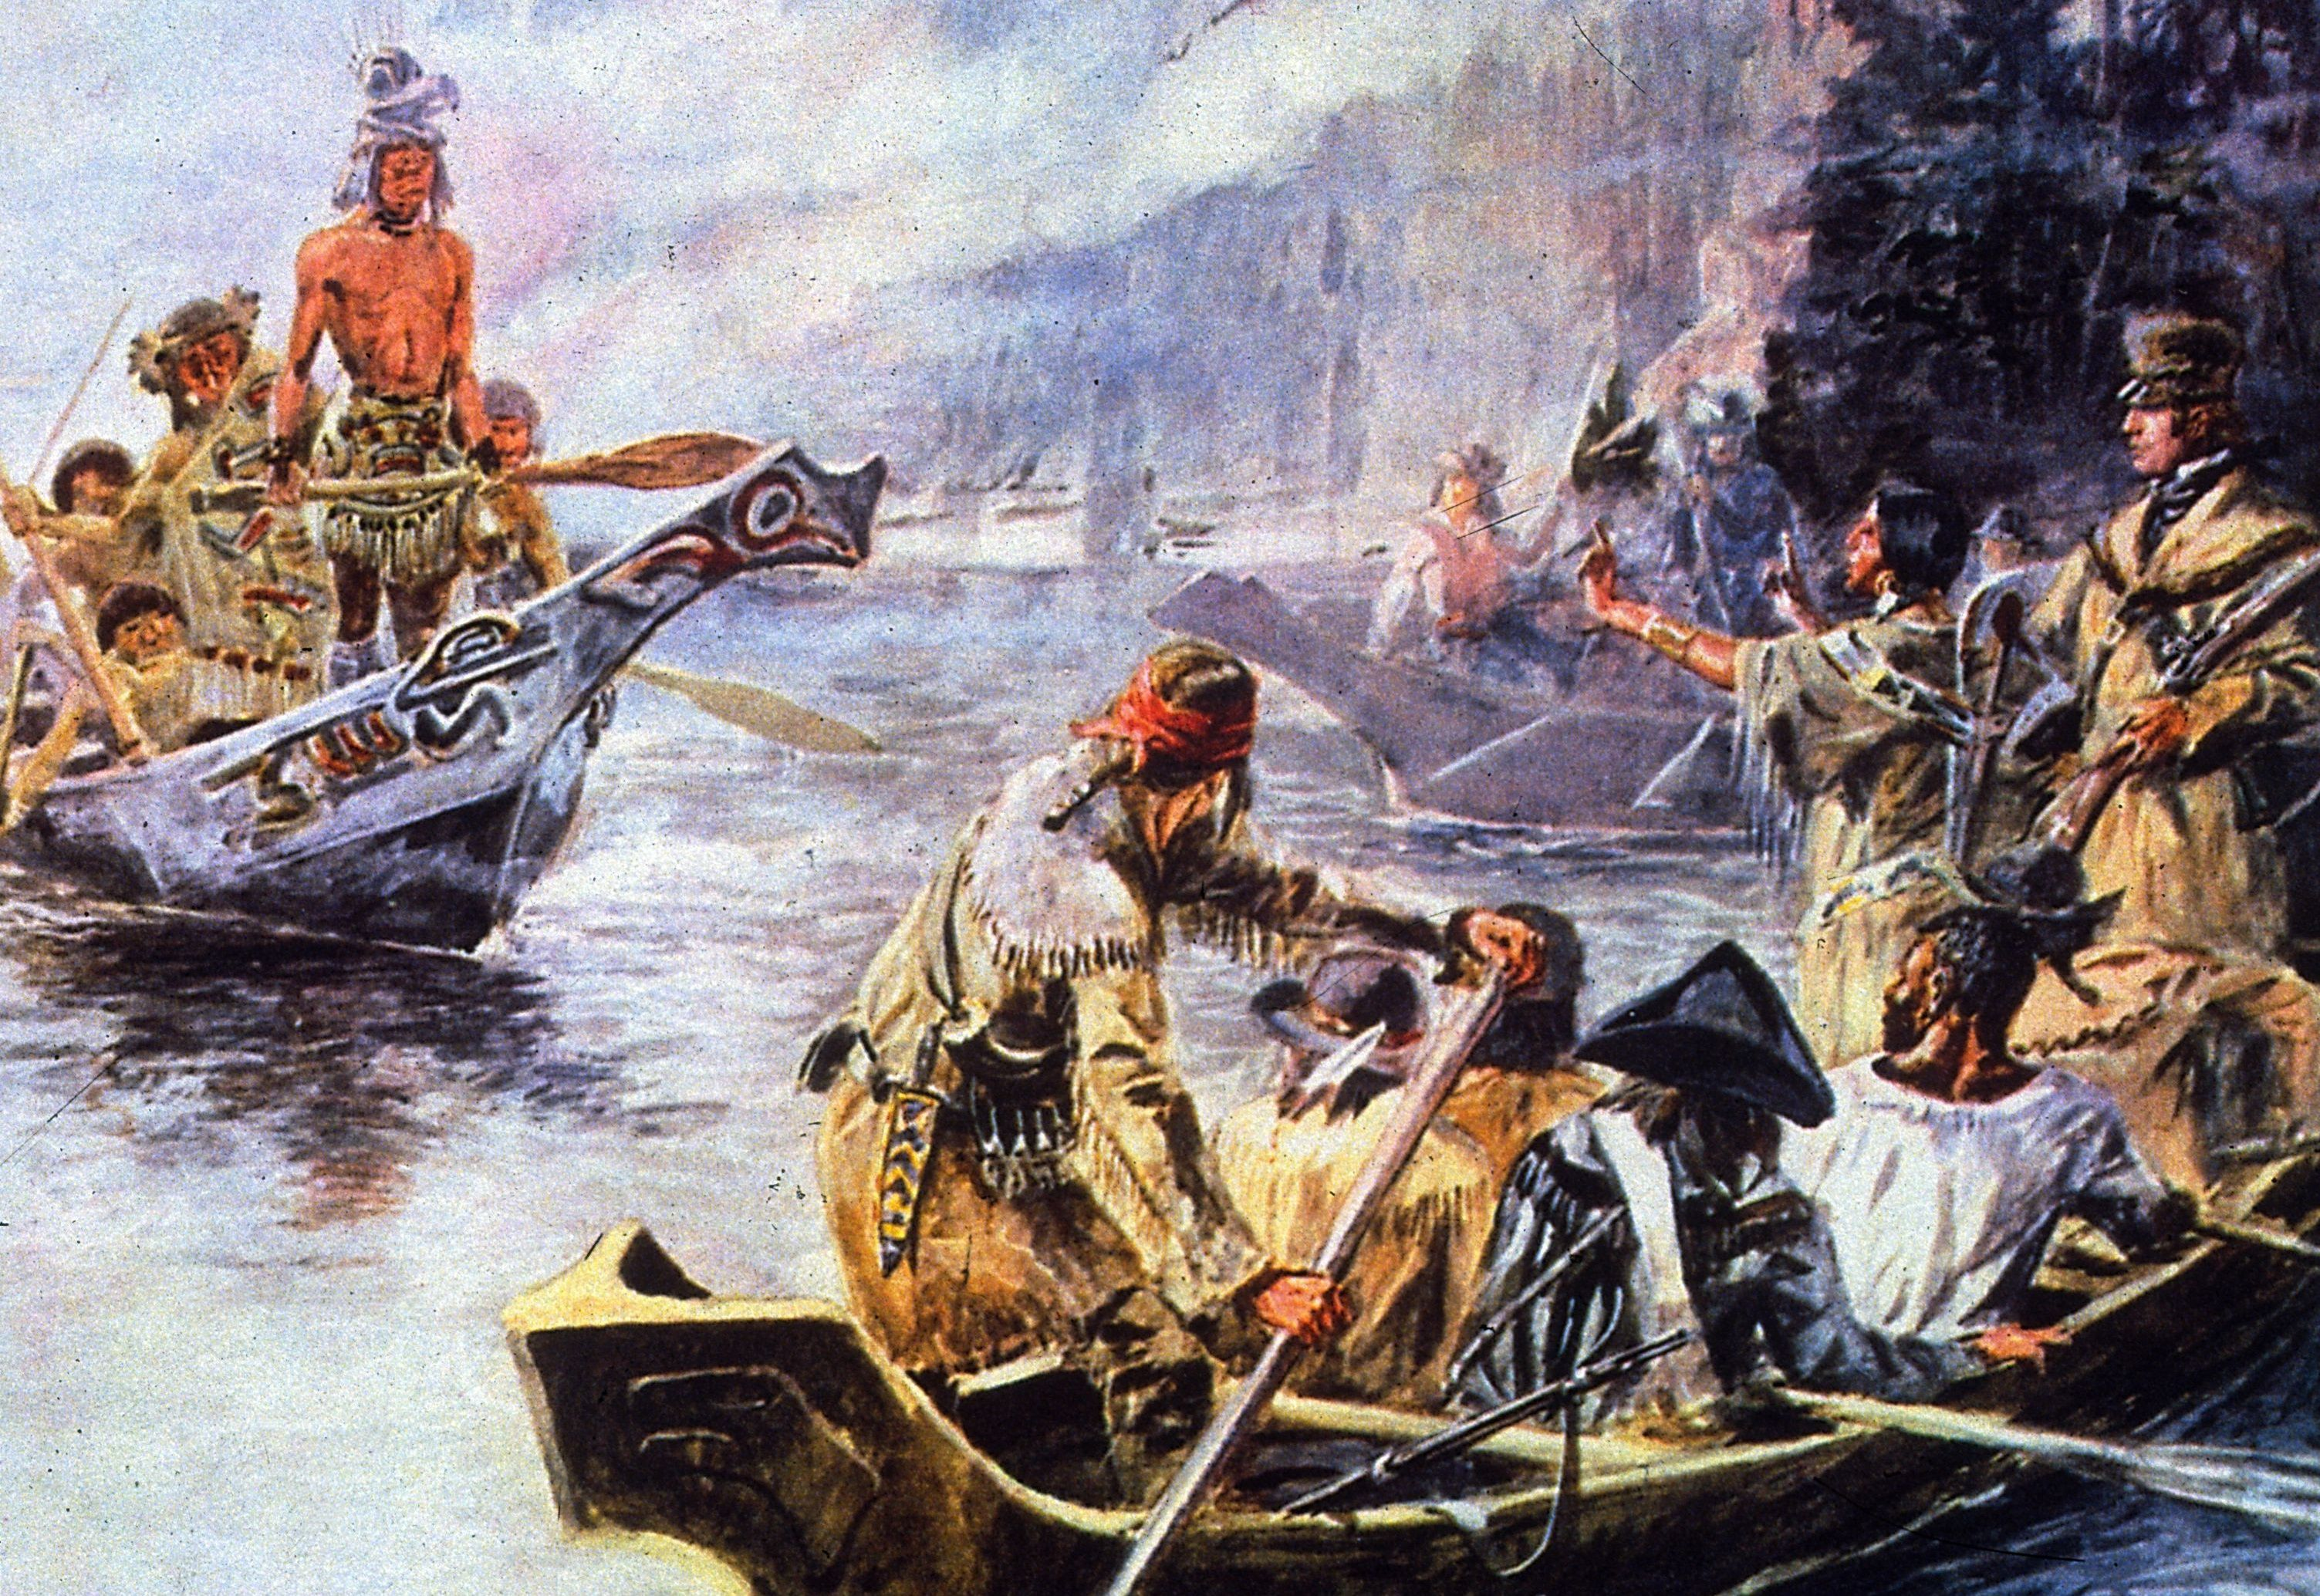 Painting of the Lewis and Clark Expedition